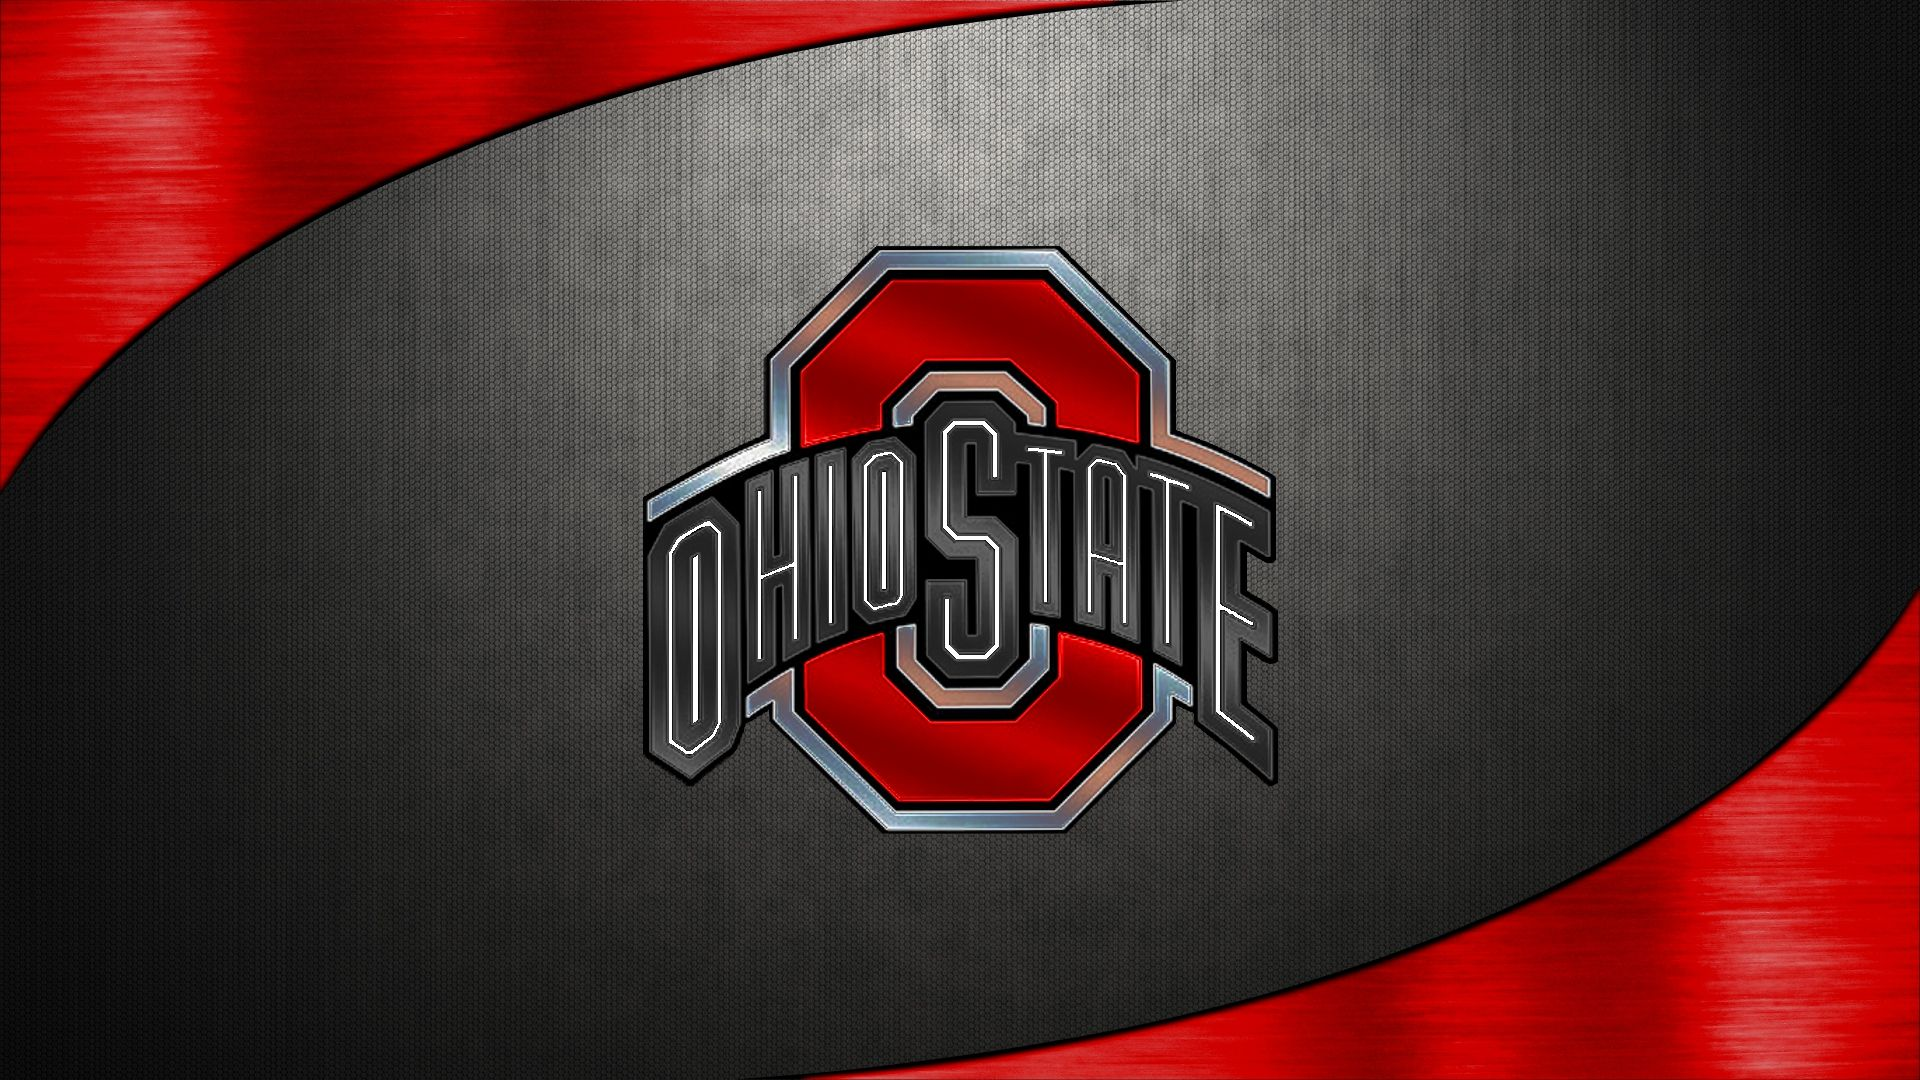 Ohio State Football Wallpaper Osu Wallpaper 447 Ohio State Wallpaper Ohio State Buckeyes Football Ohio State Football